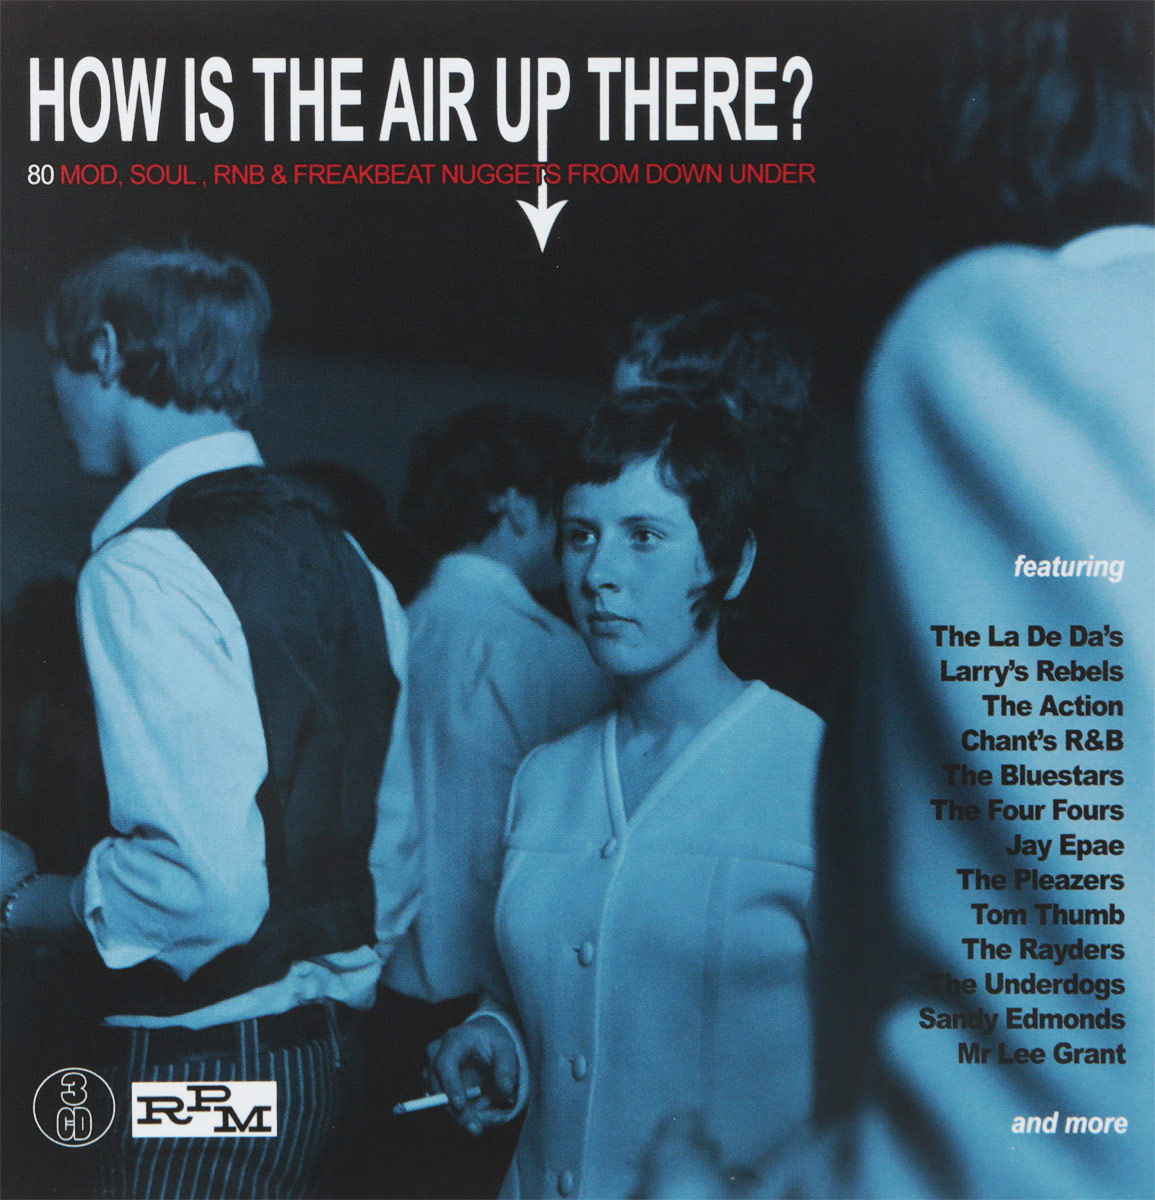 How Is The Air Up There? 80 Mod, Soul And Freakbeat Nuggets From Down Under (3 CD)